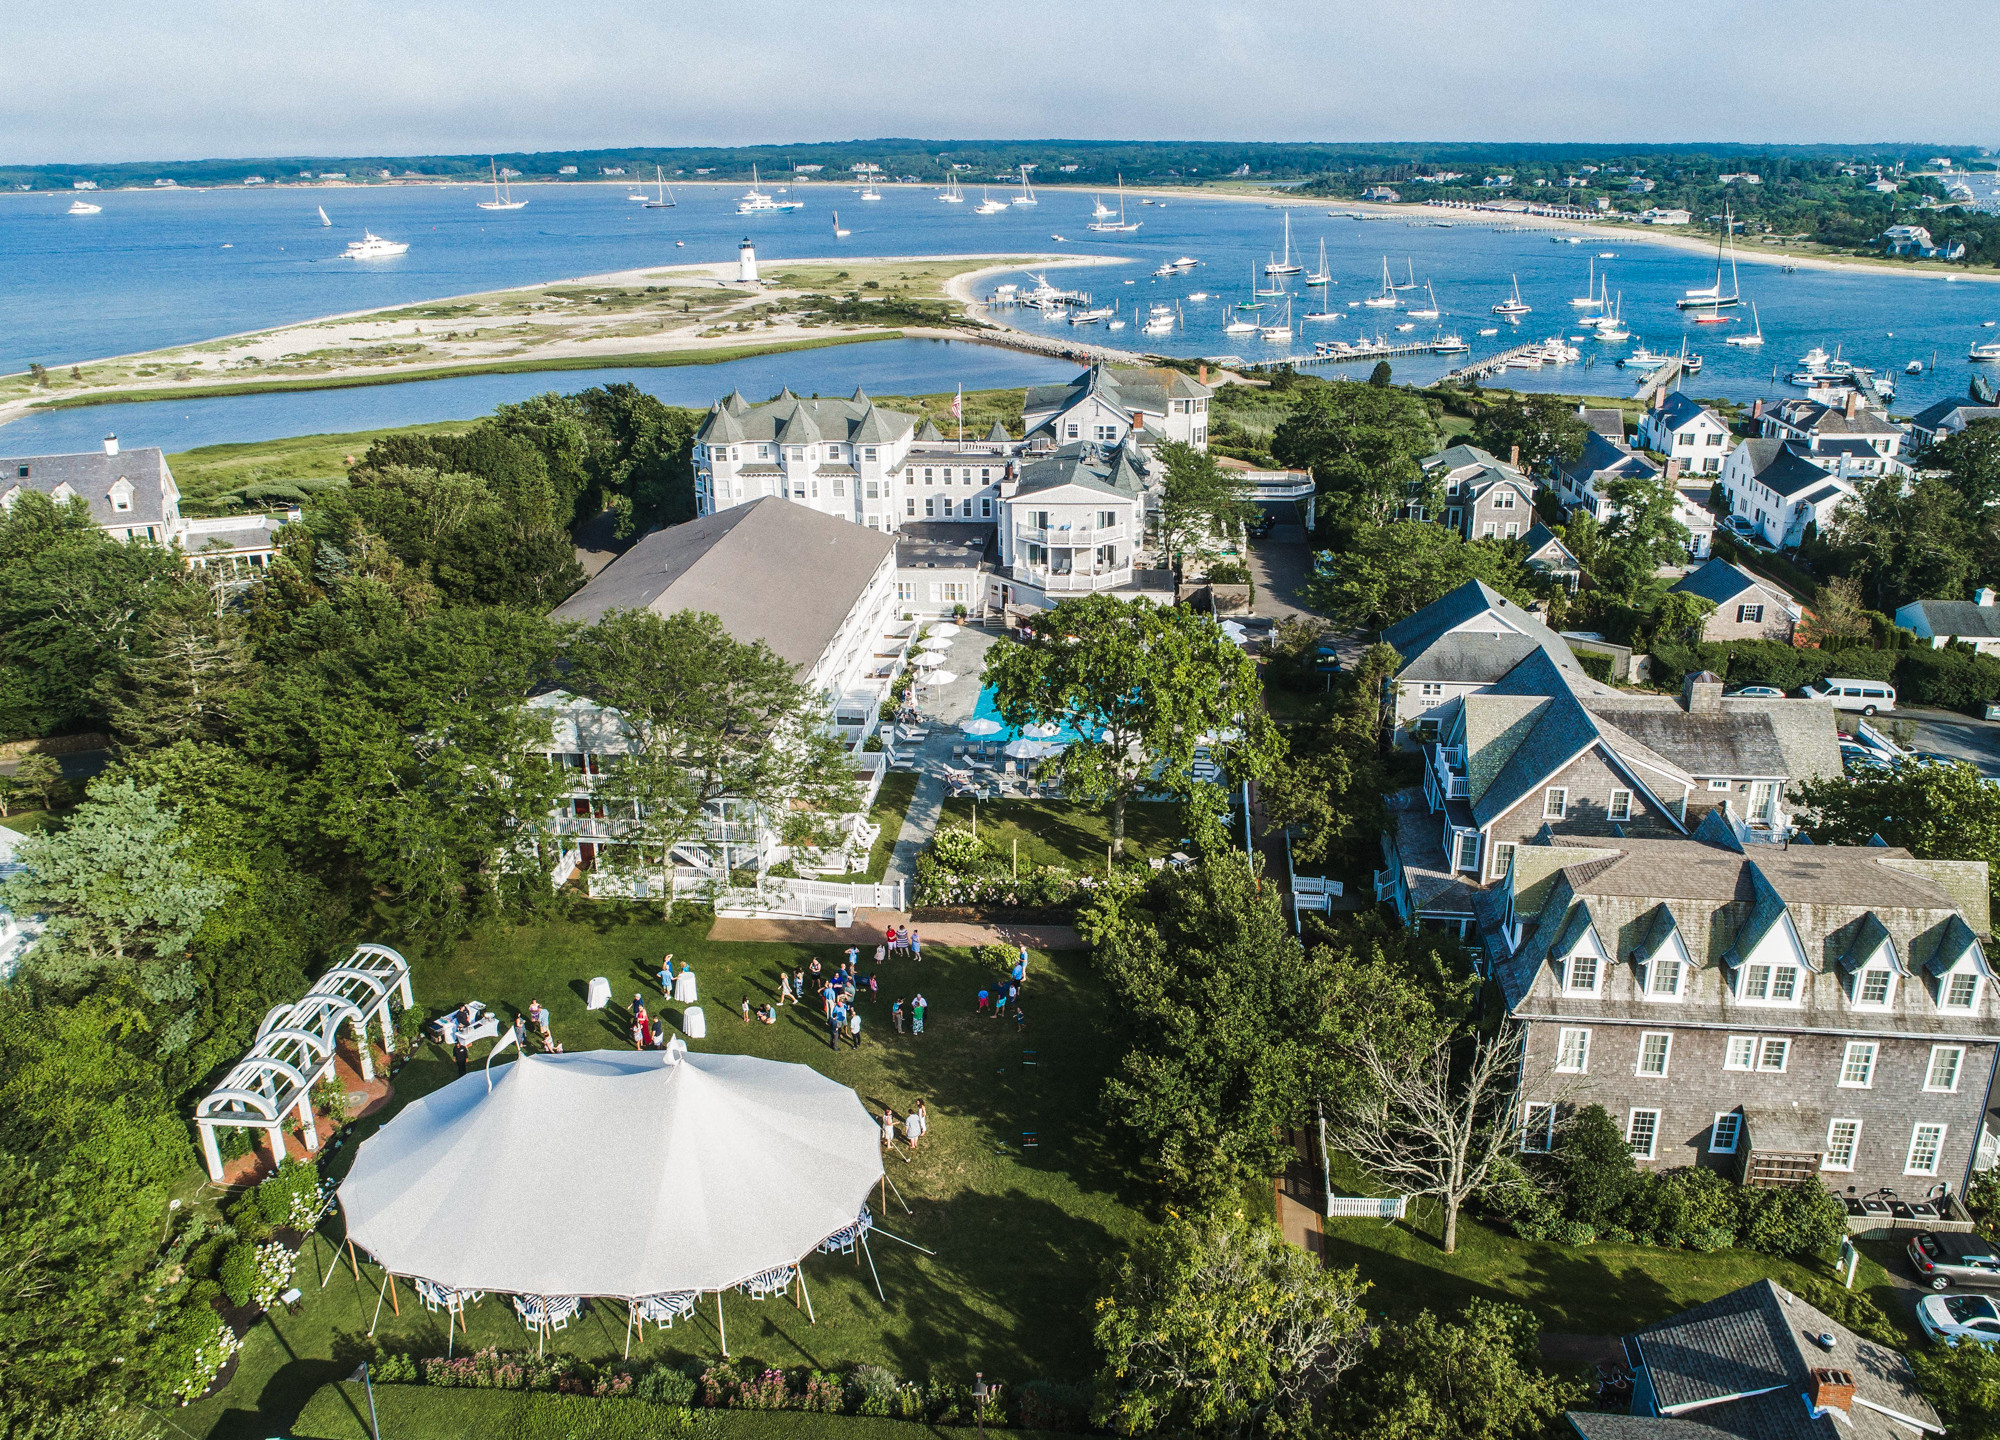 Drone photo of the Harbor View Hotel a martha's vineyard wedding venues grounds with a tent looking out towards the Edgartown Lighthouse  photo by David Welch Photography